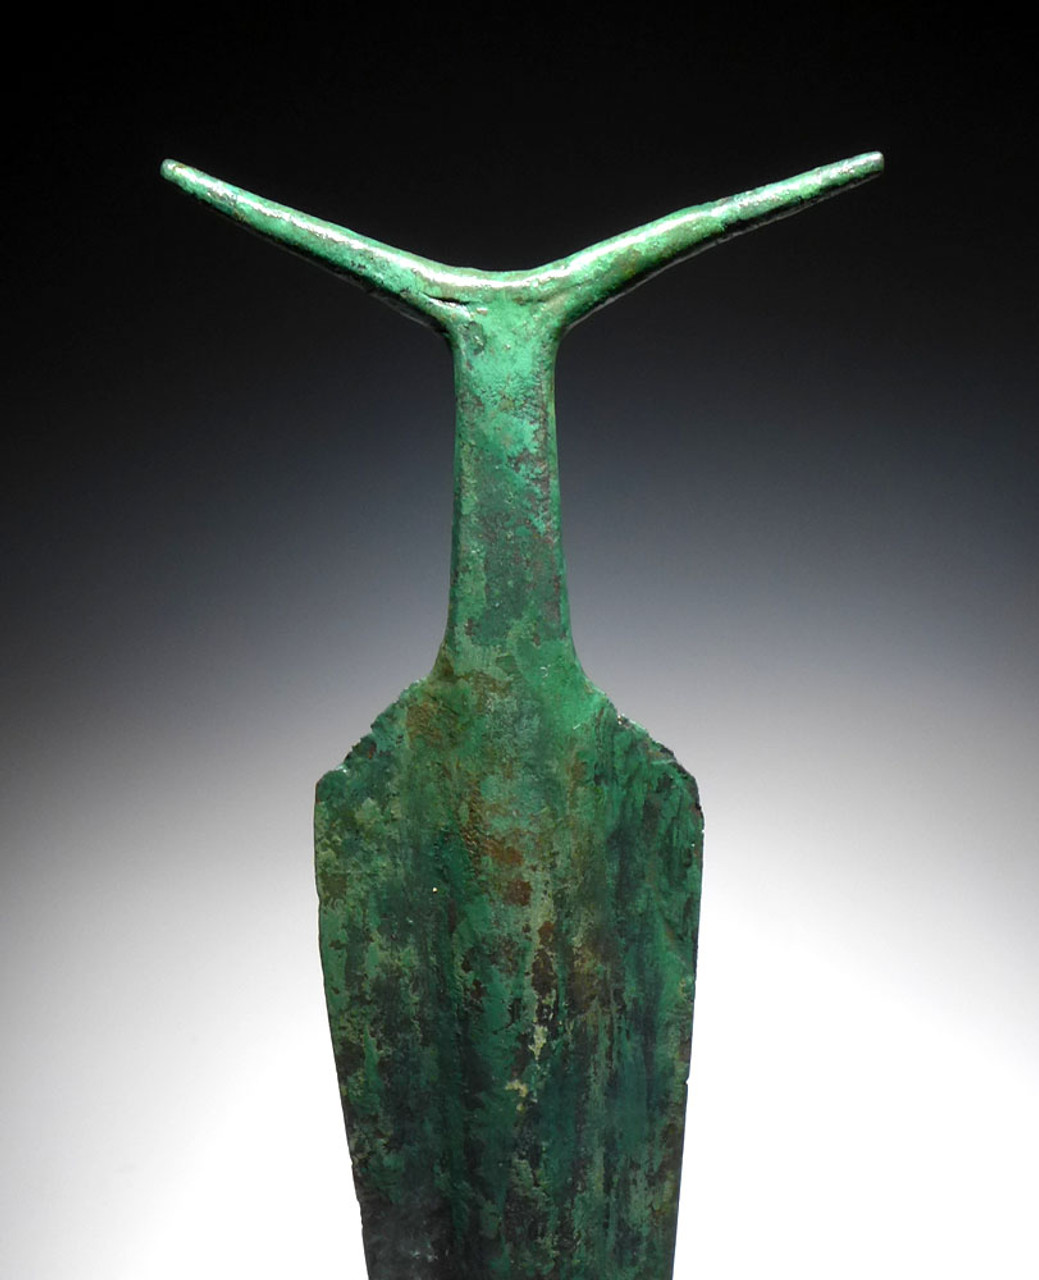 EXTREMELY RARE ANCIENT COPPER ANTENNA SWORD FROM THE HARAPPAN CULTURE  *LUR129